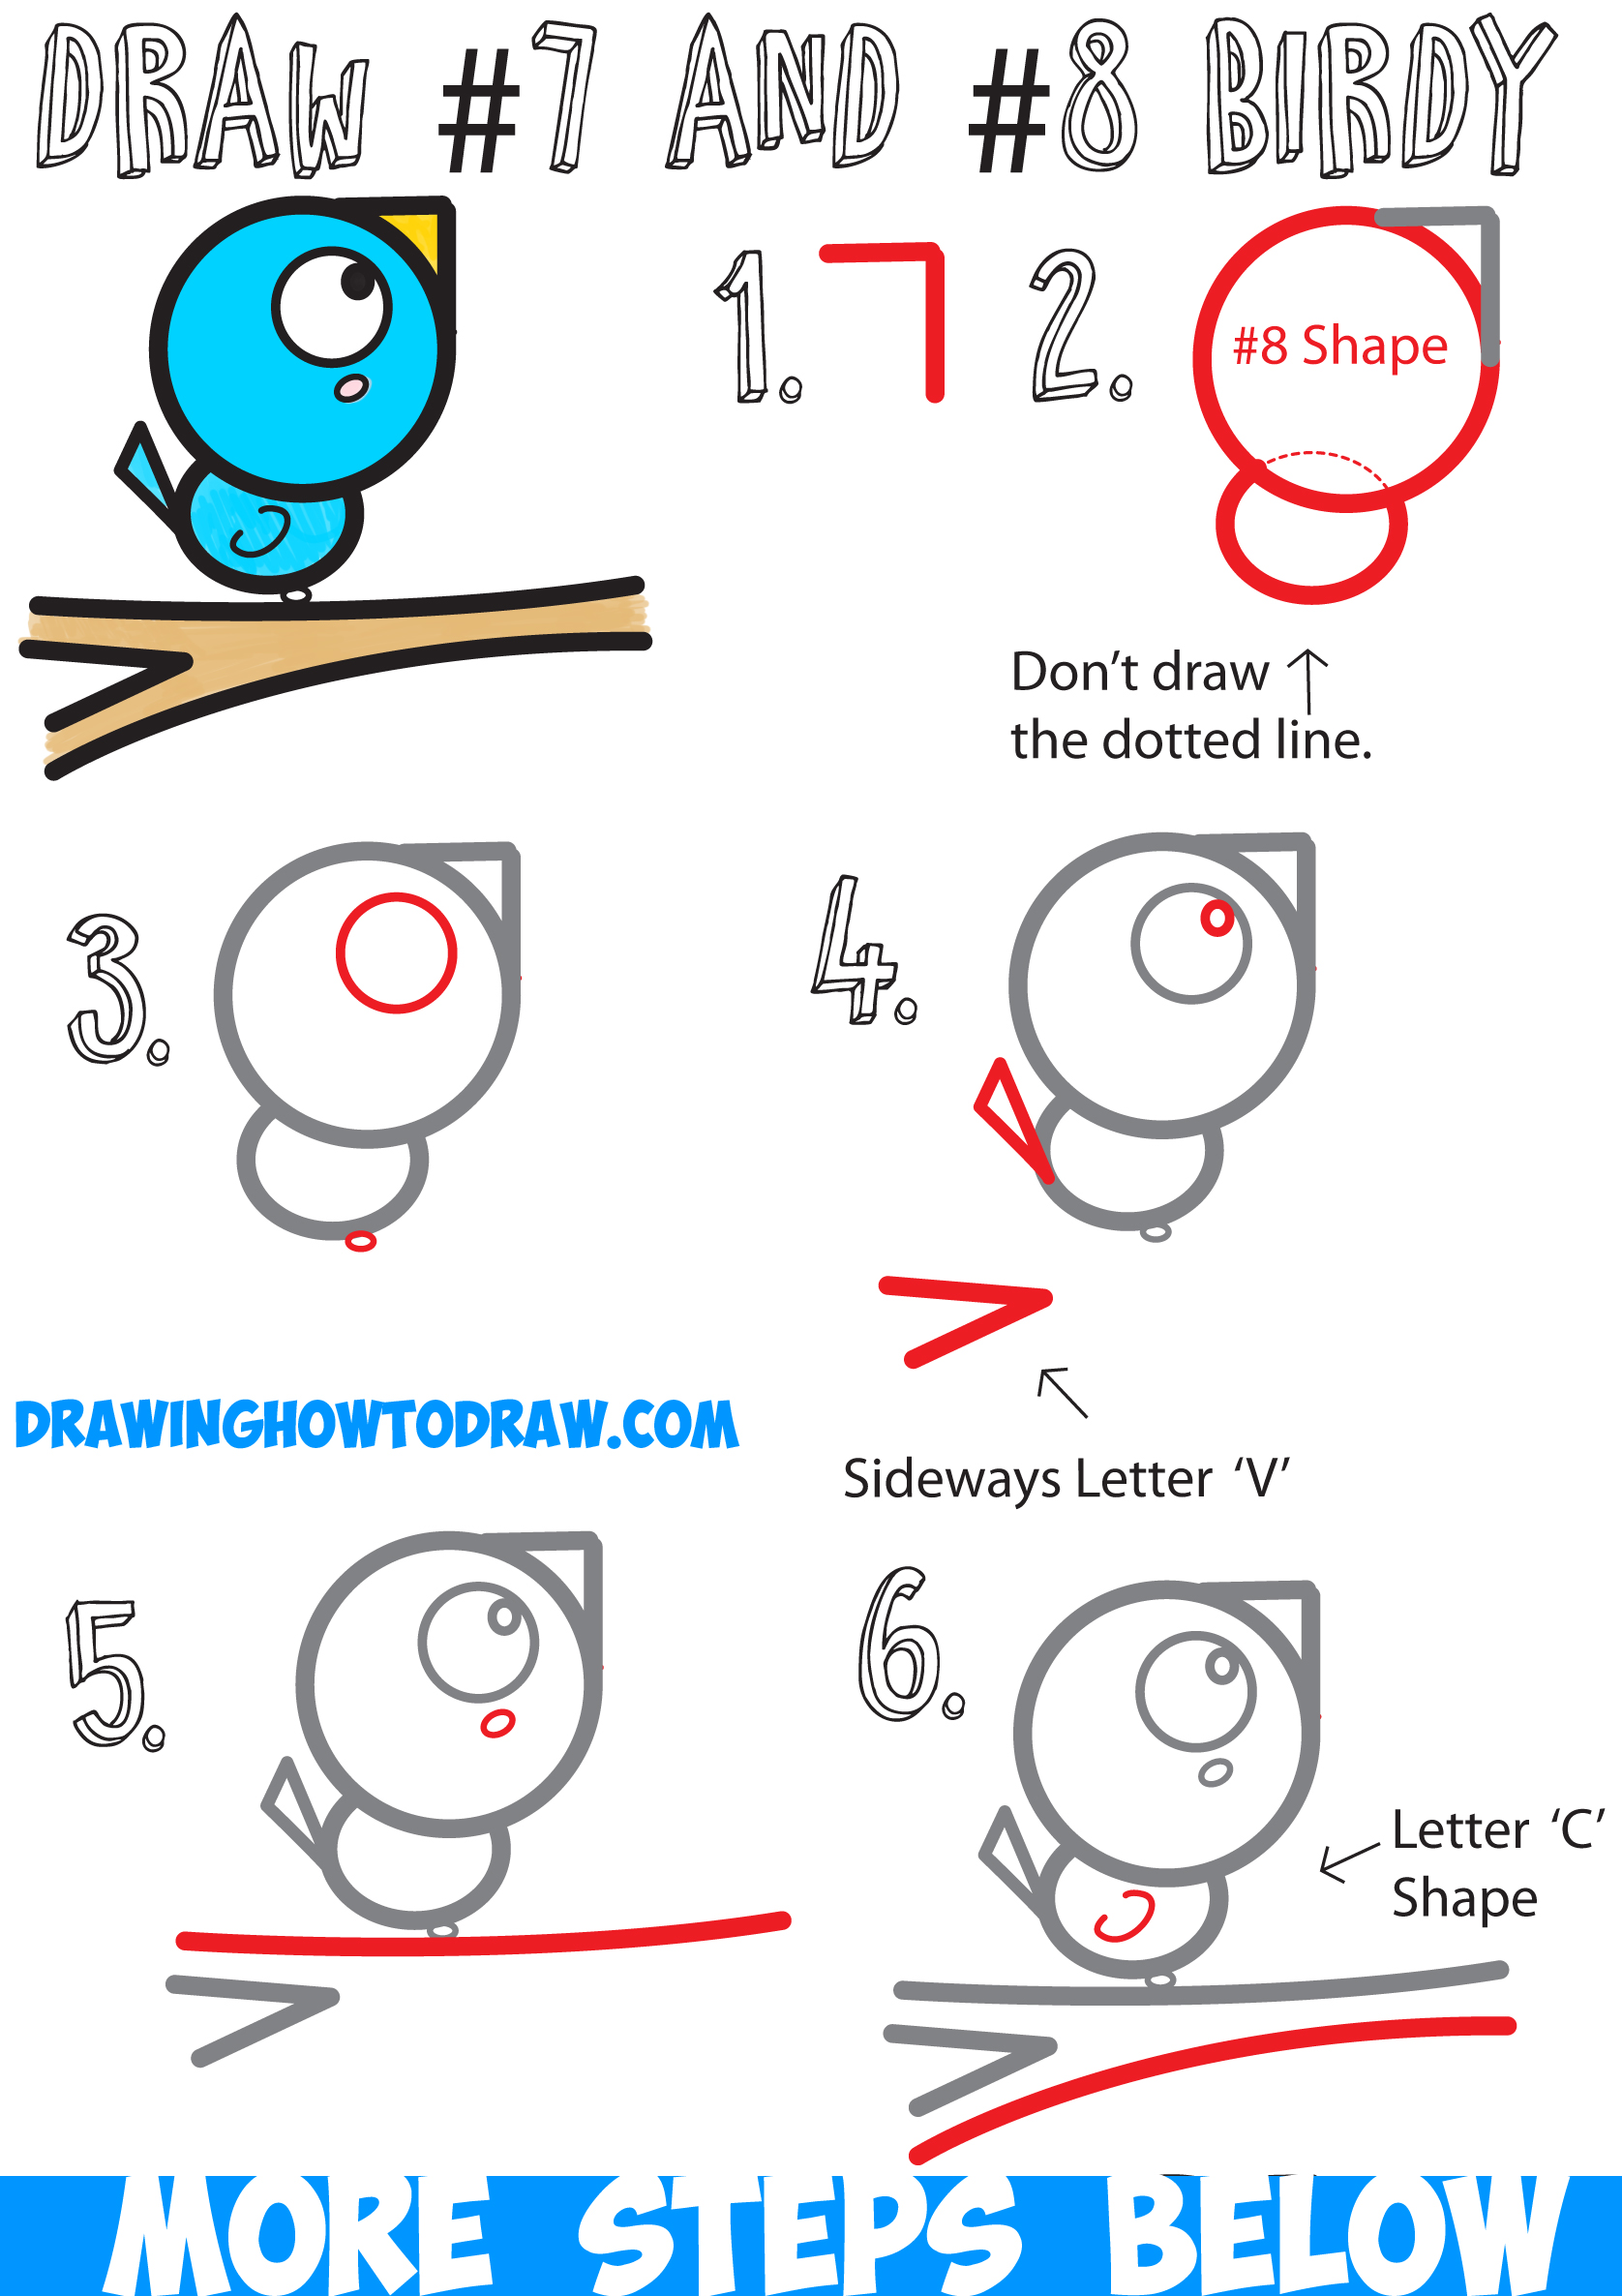 How To Draw A Bird On A Branch Easy For Kids Step By Step Drawing Tutorial With Numbers How To Draw Step By Step Drawing Tutorials